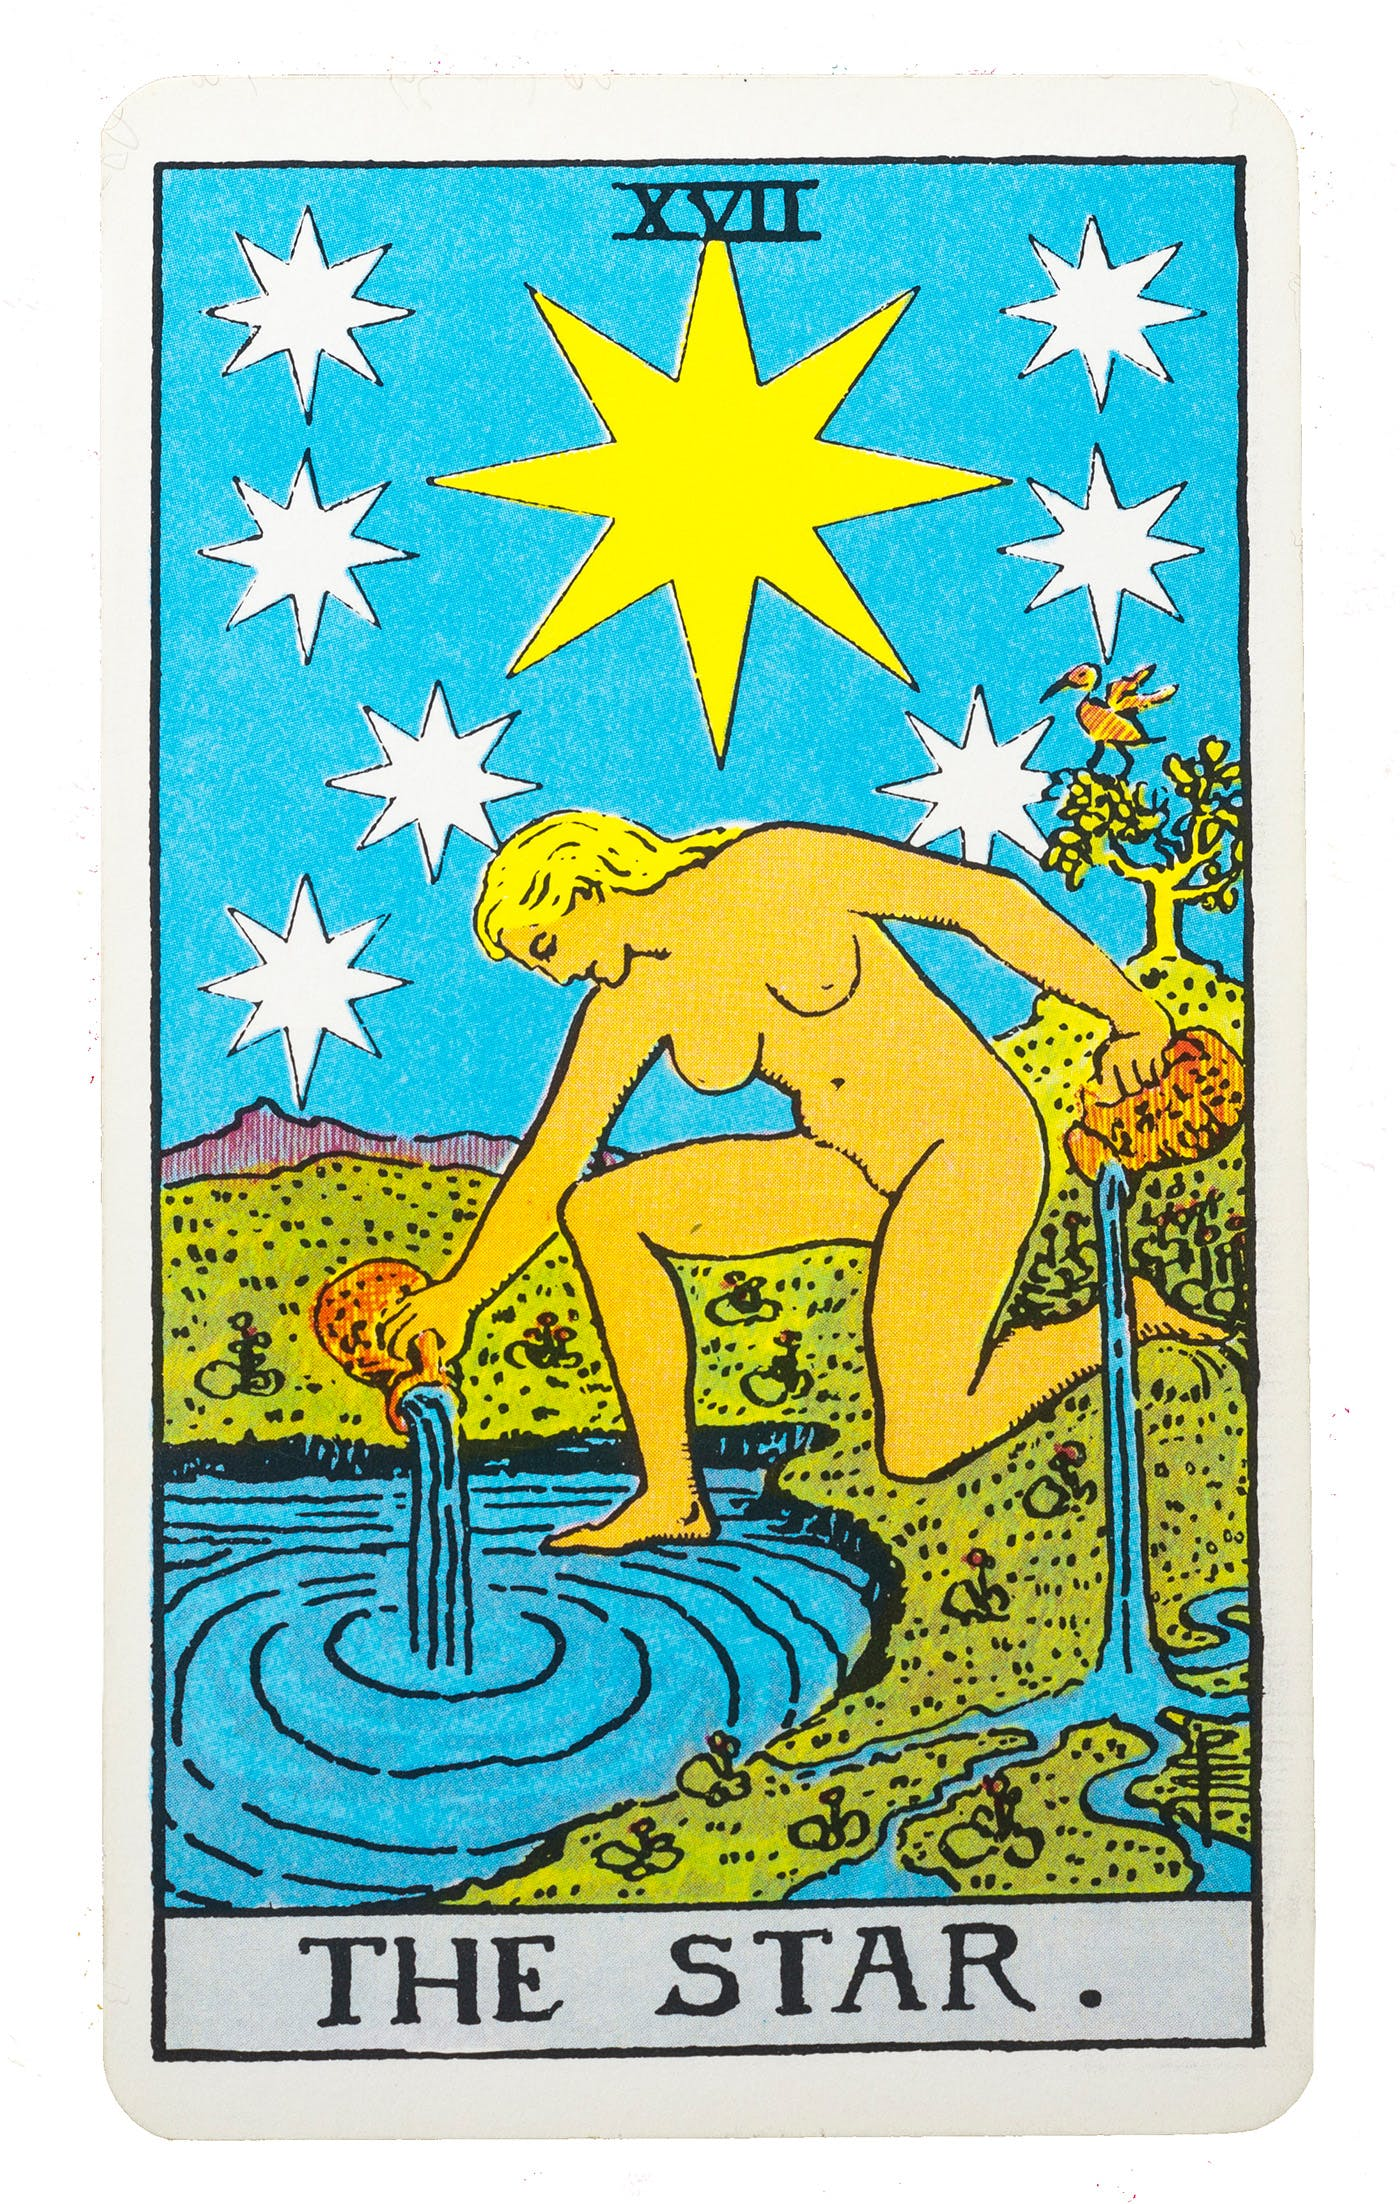 The Star tarot card from the rider-waite deck. Image of a woman kneeling by a lake pouring cups of water into the lake.